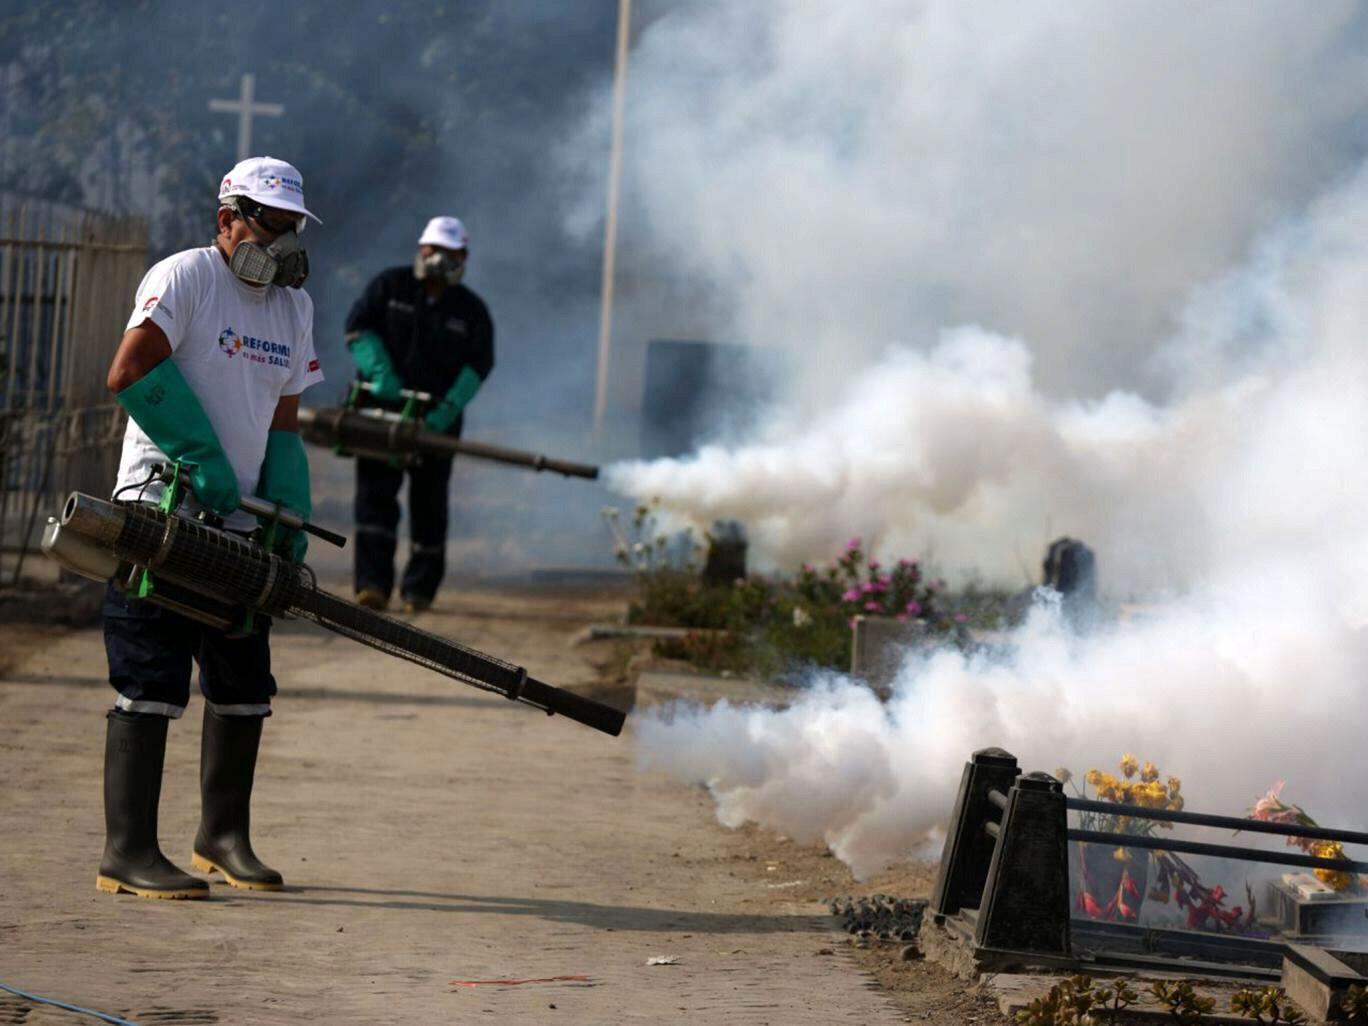 Health workers fumigating to combat Zika virus in Peru